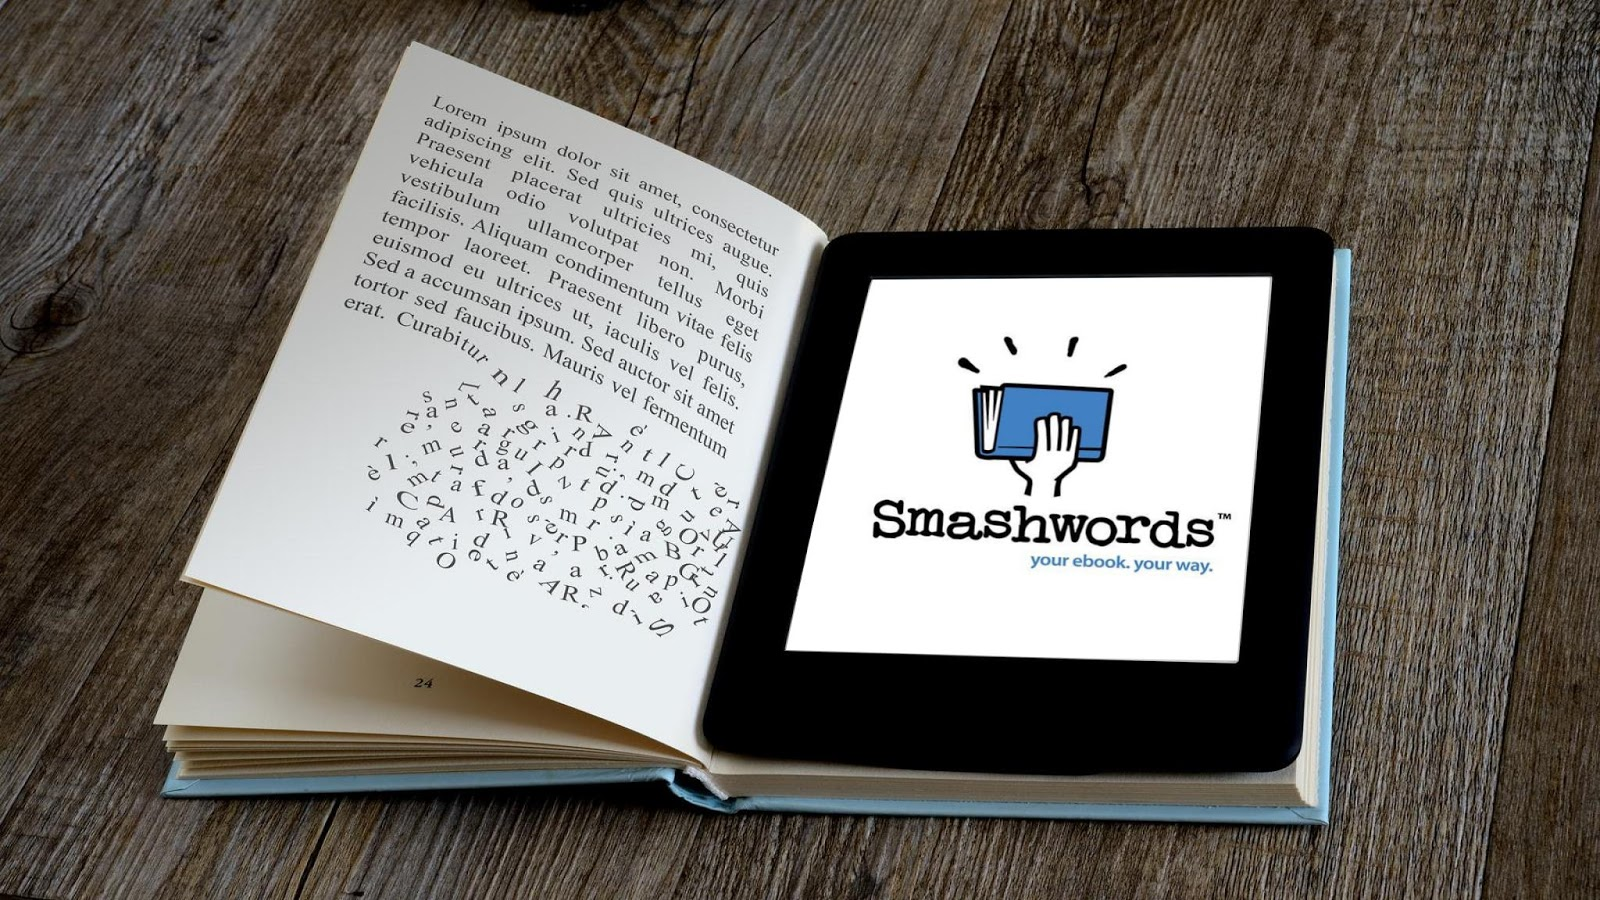 https://www.udemy.com/self-publishing-with-smashwords/?couponCode=Smashwords